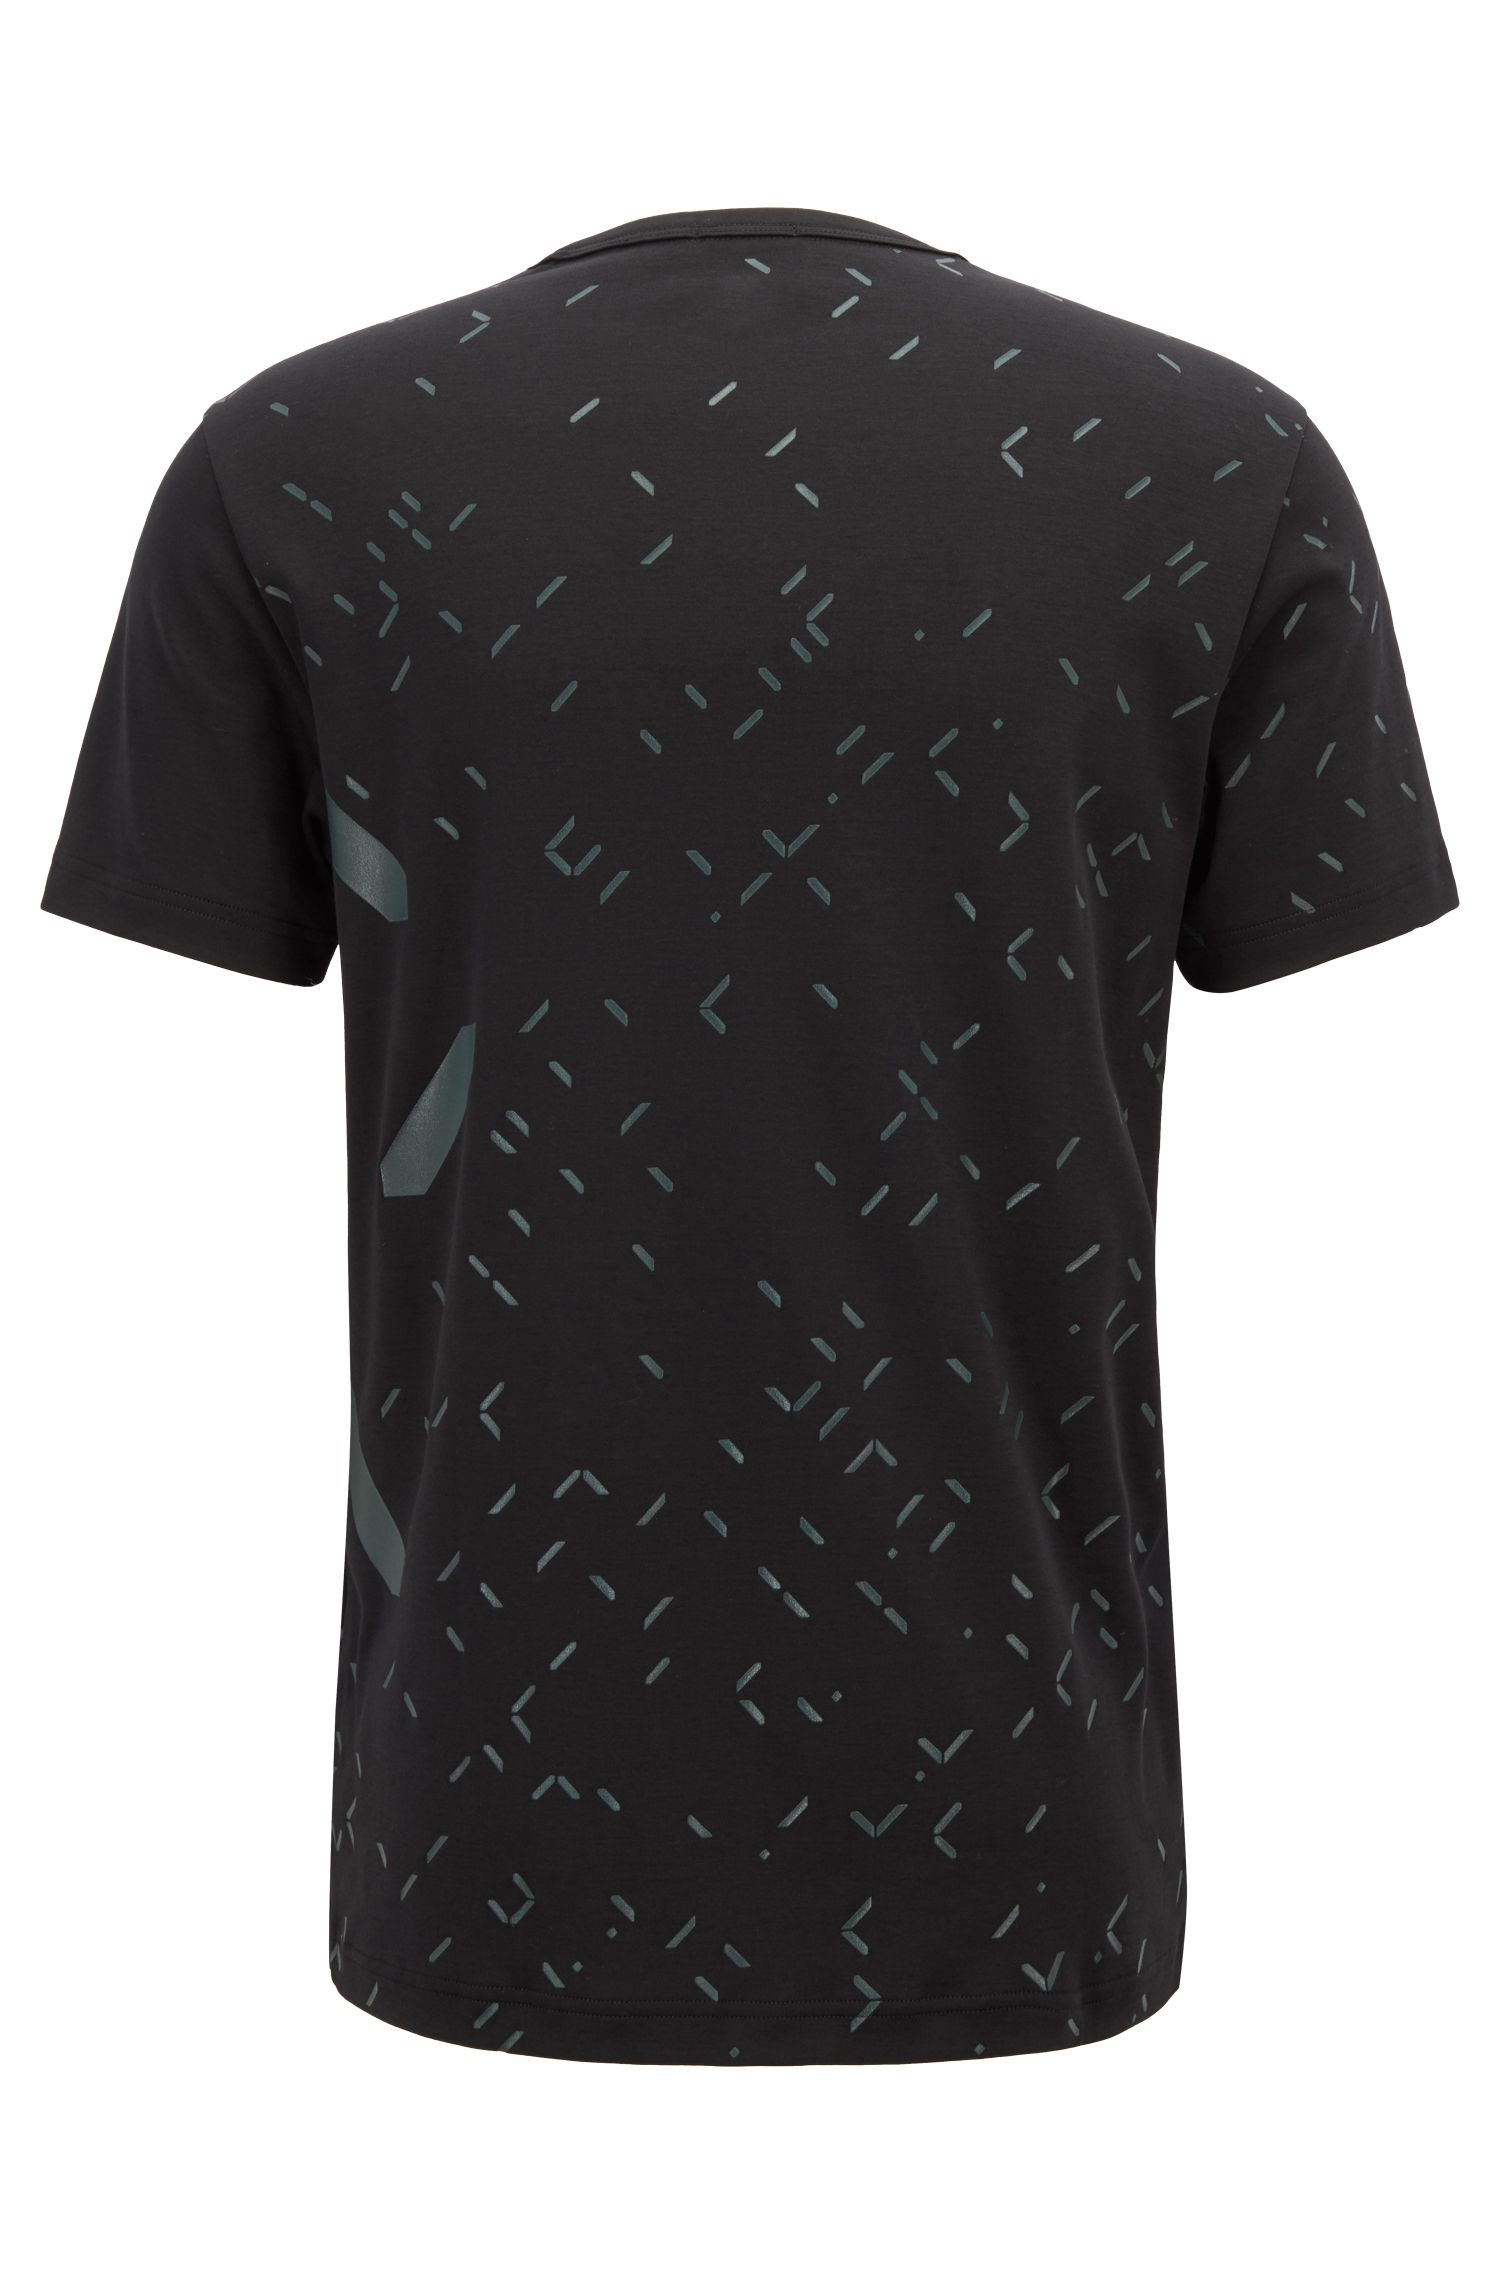 Slim-fit T-shirt with all-over digital-clock artwork, Black